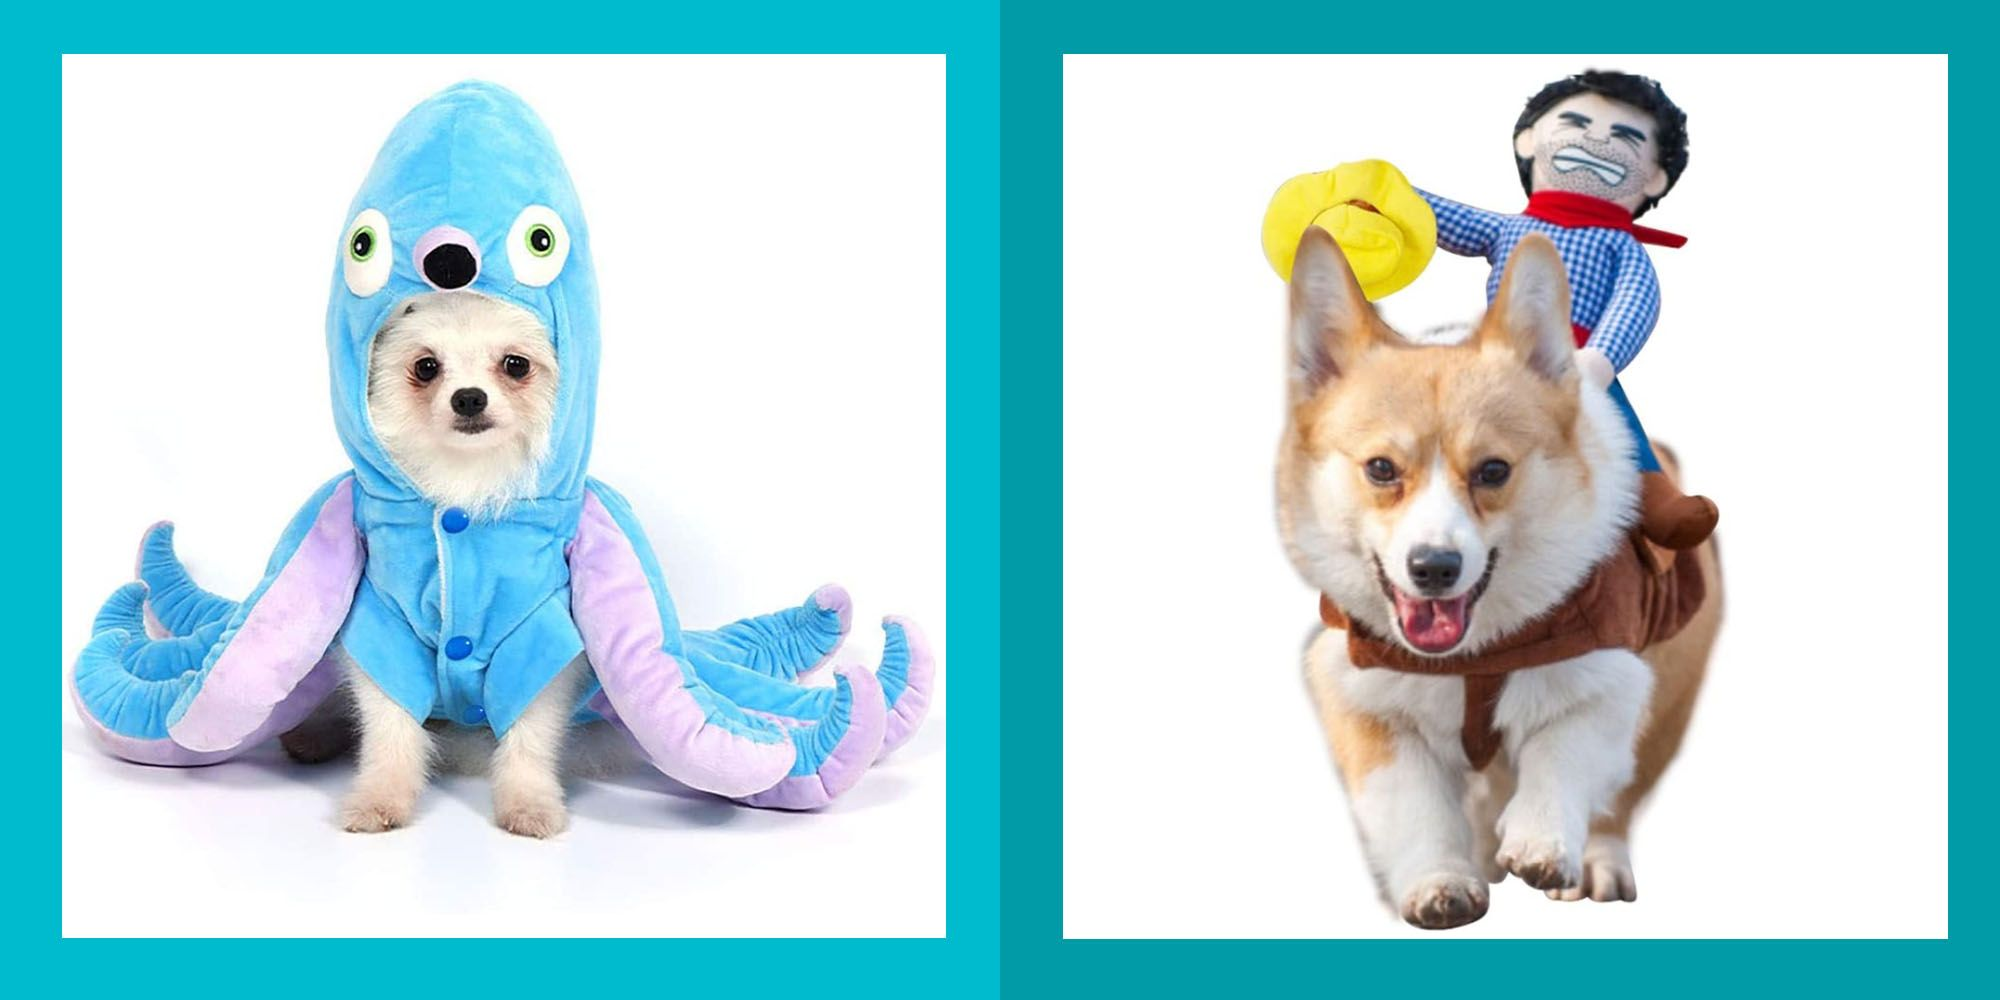 69 Dog Halloween Costumes Cute Ideas for Pet Costumes